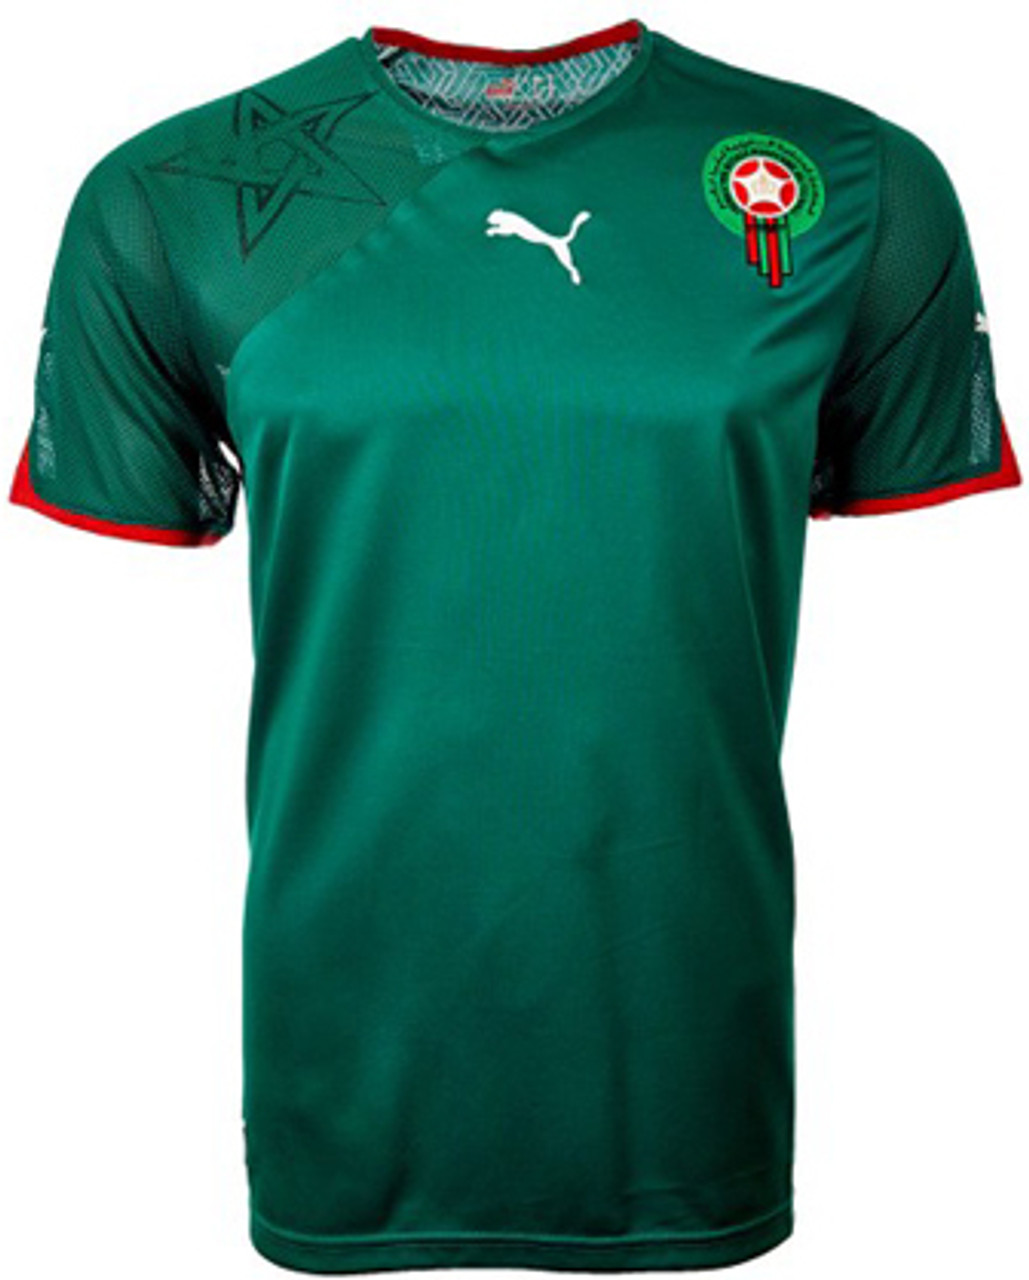 finest selection 770d2 95d11 PUMA MOROCCO 2010 HOME JERSEY